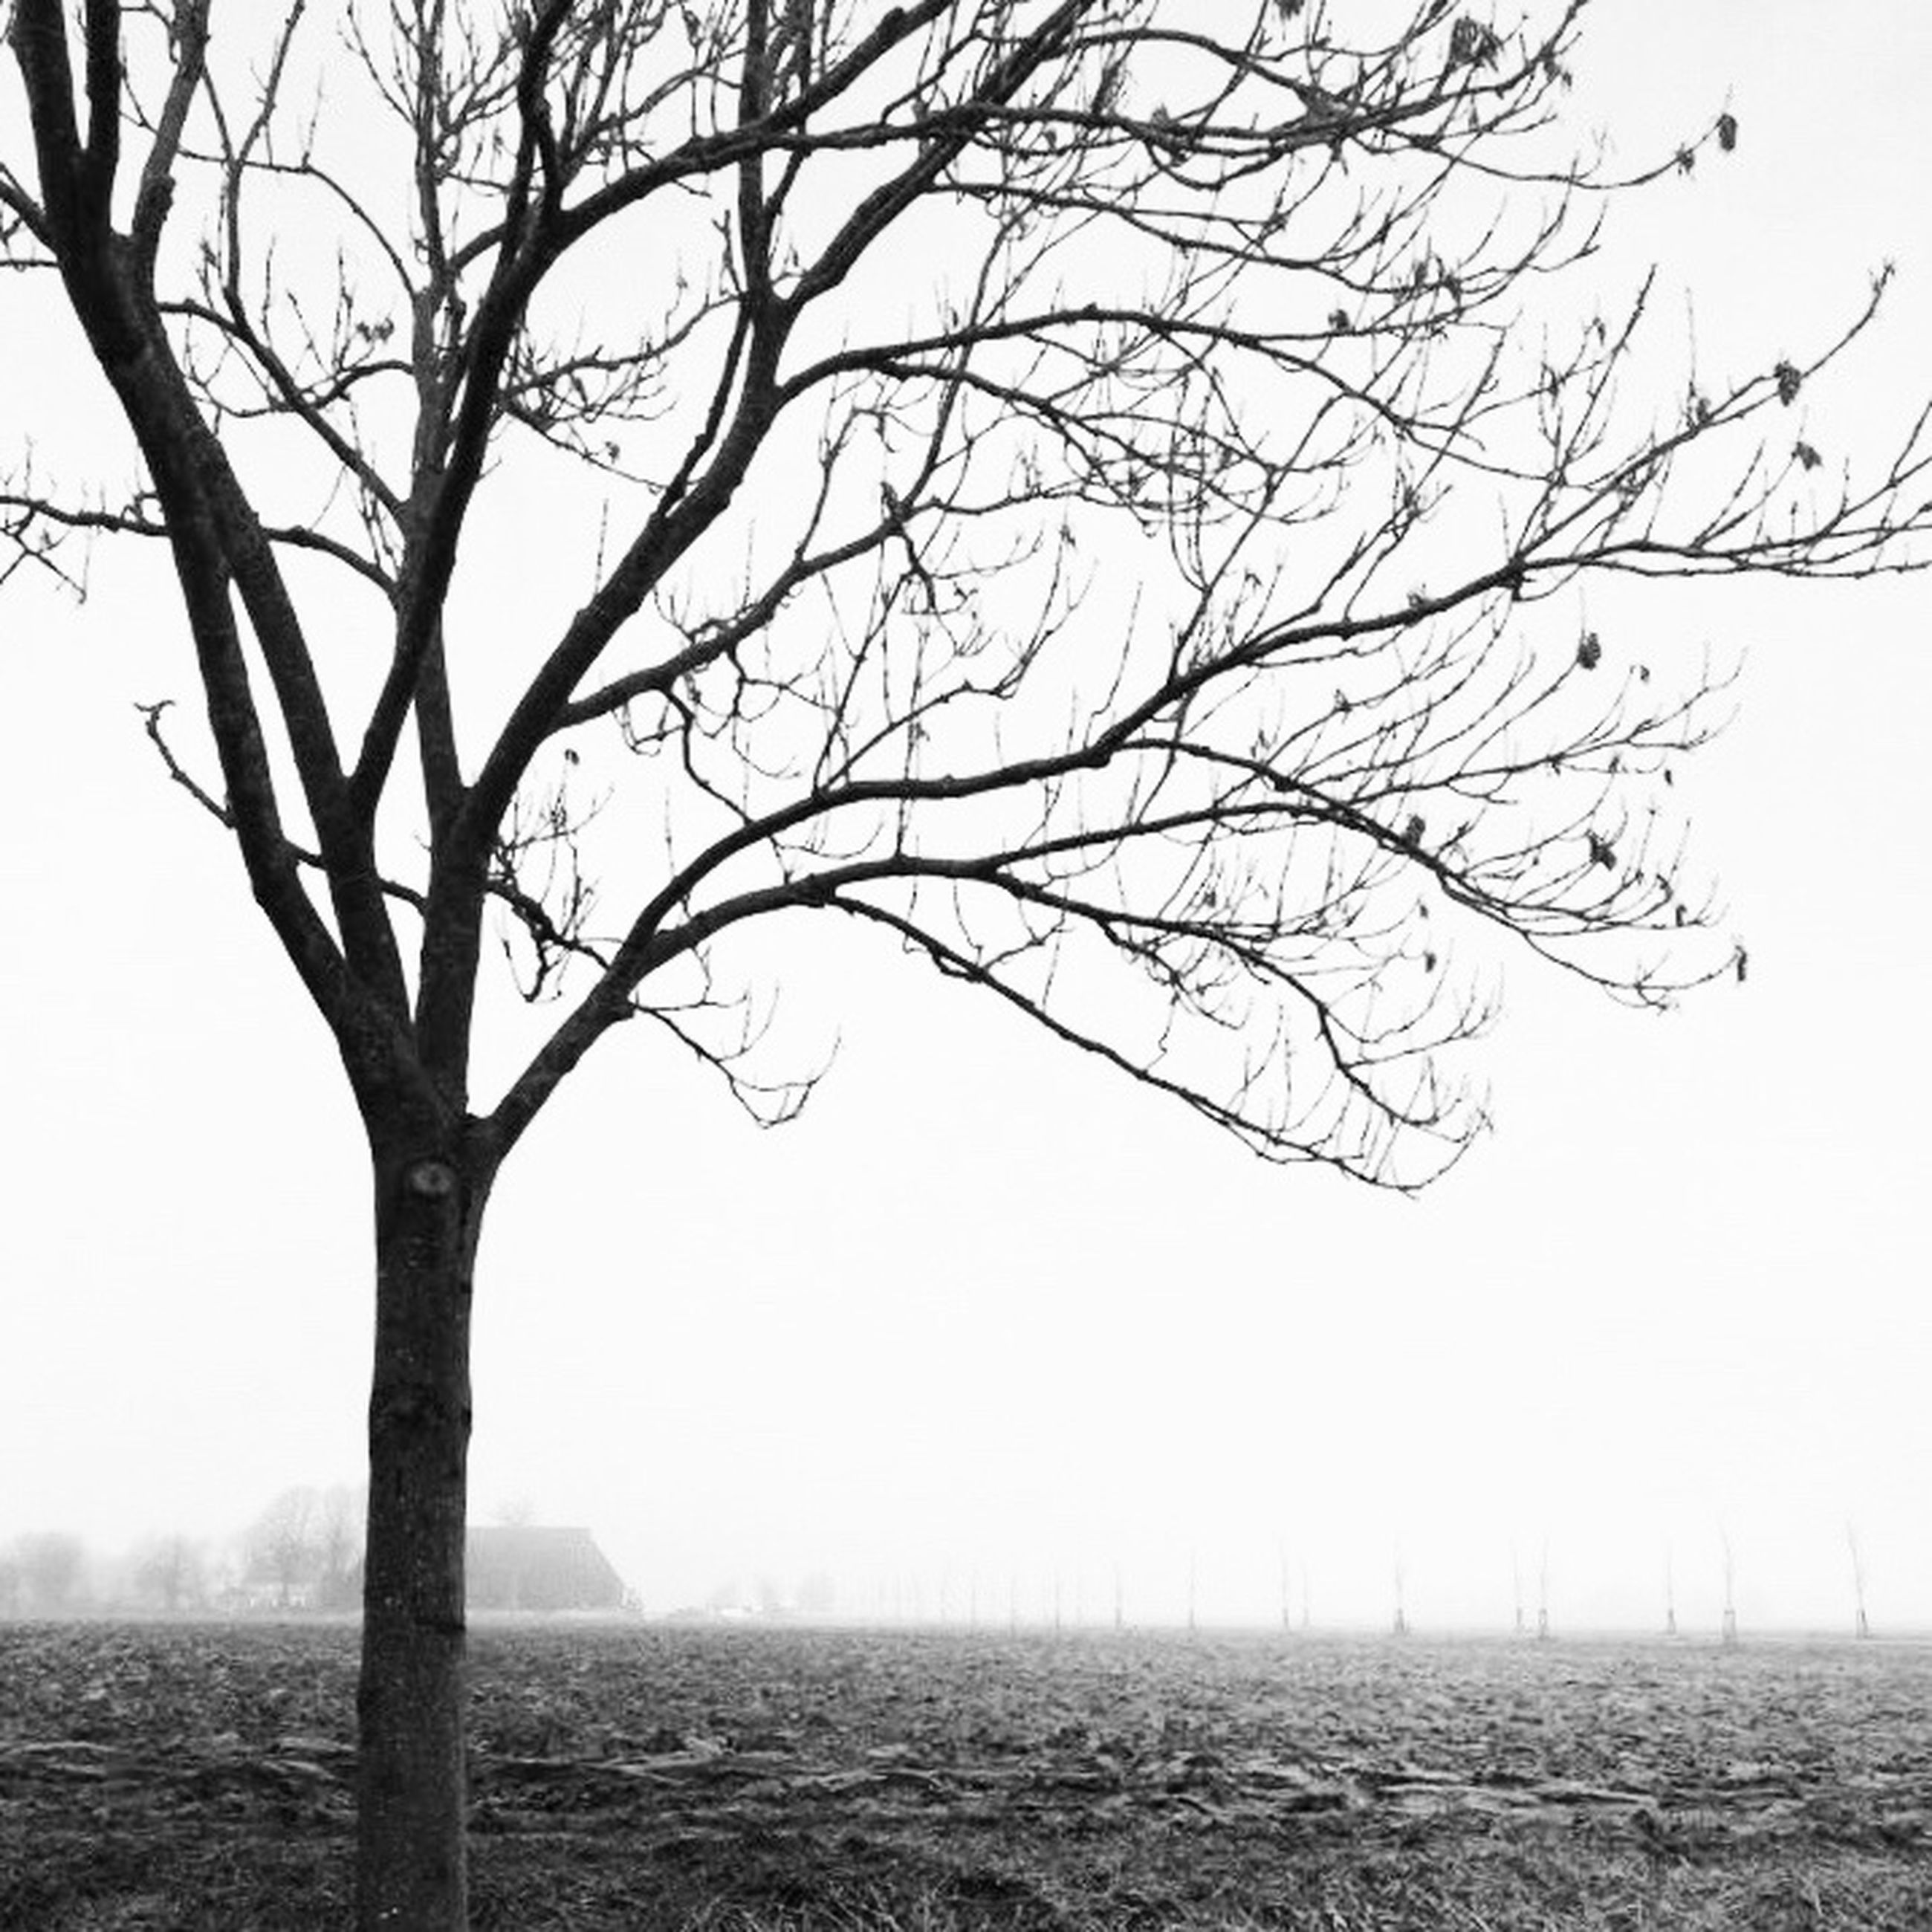 bare tree, tree, landscape, branch, tranquility, lone, nature, clear sky, isolated, tranquil scene, beauty in nature, outdoors, scenics, day, field, tree trunk, no people, sky